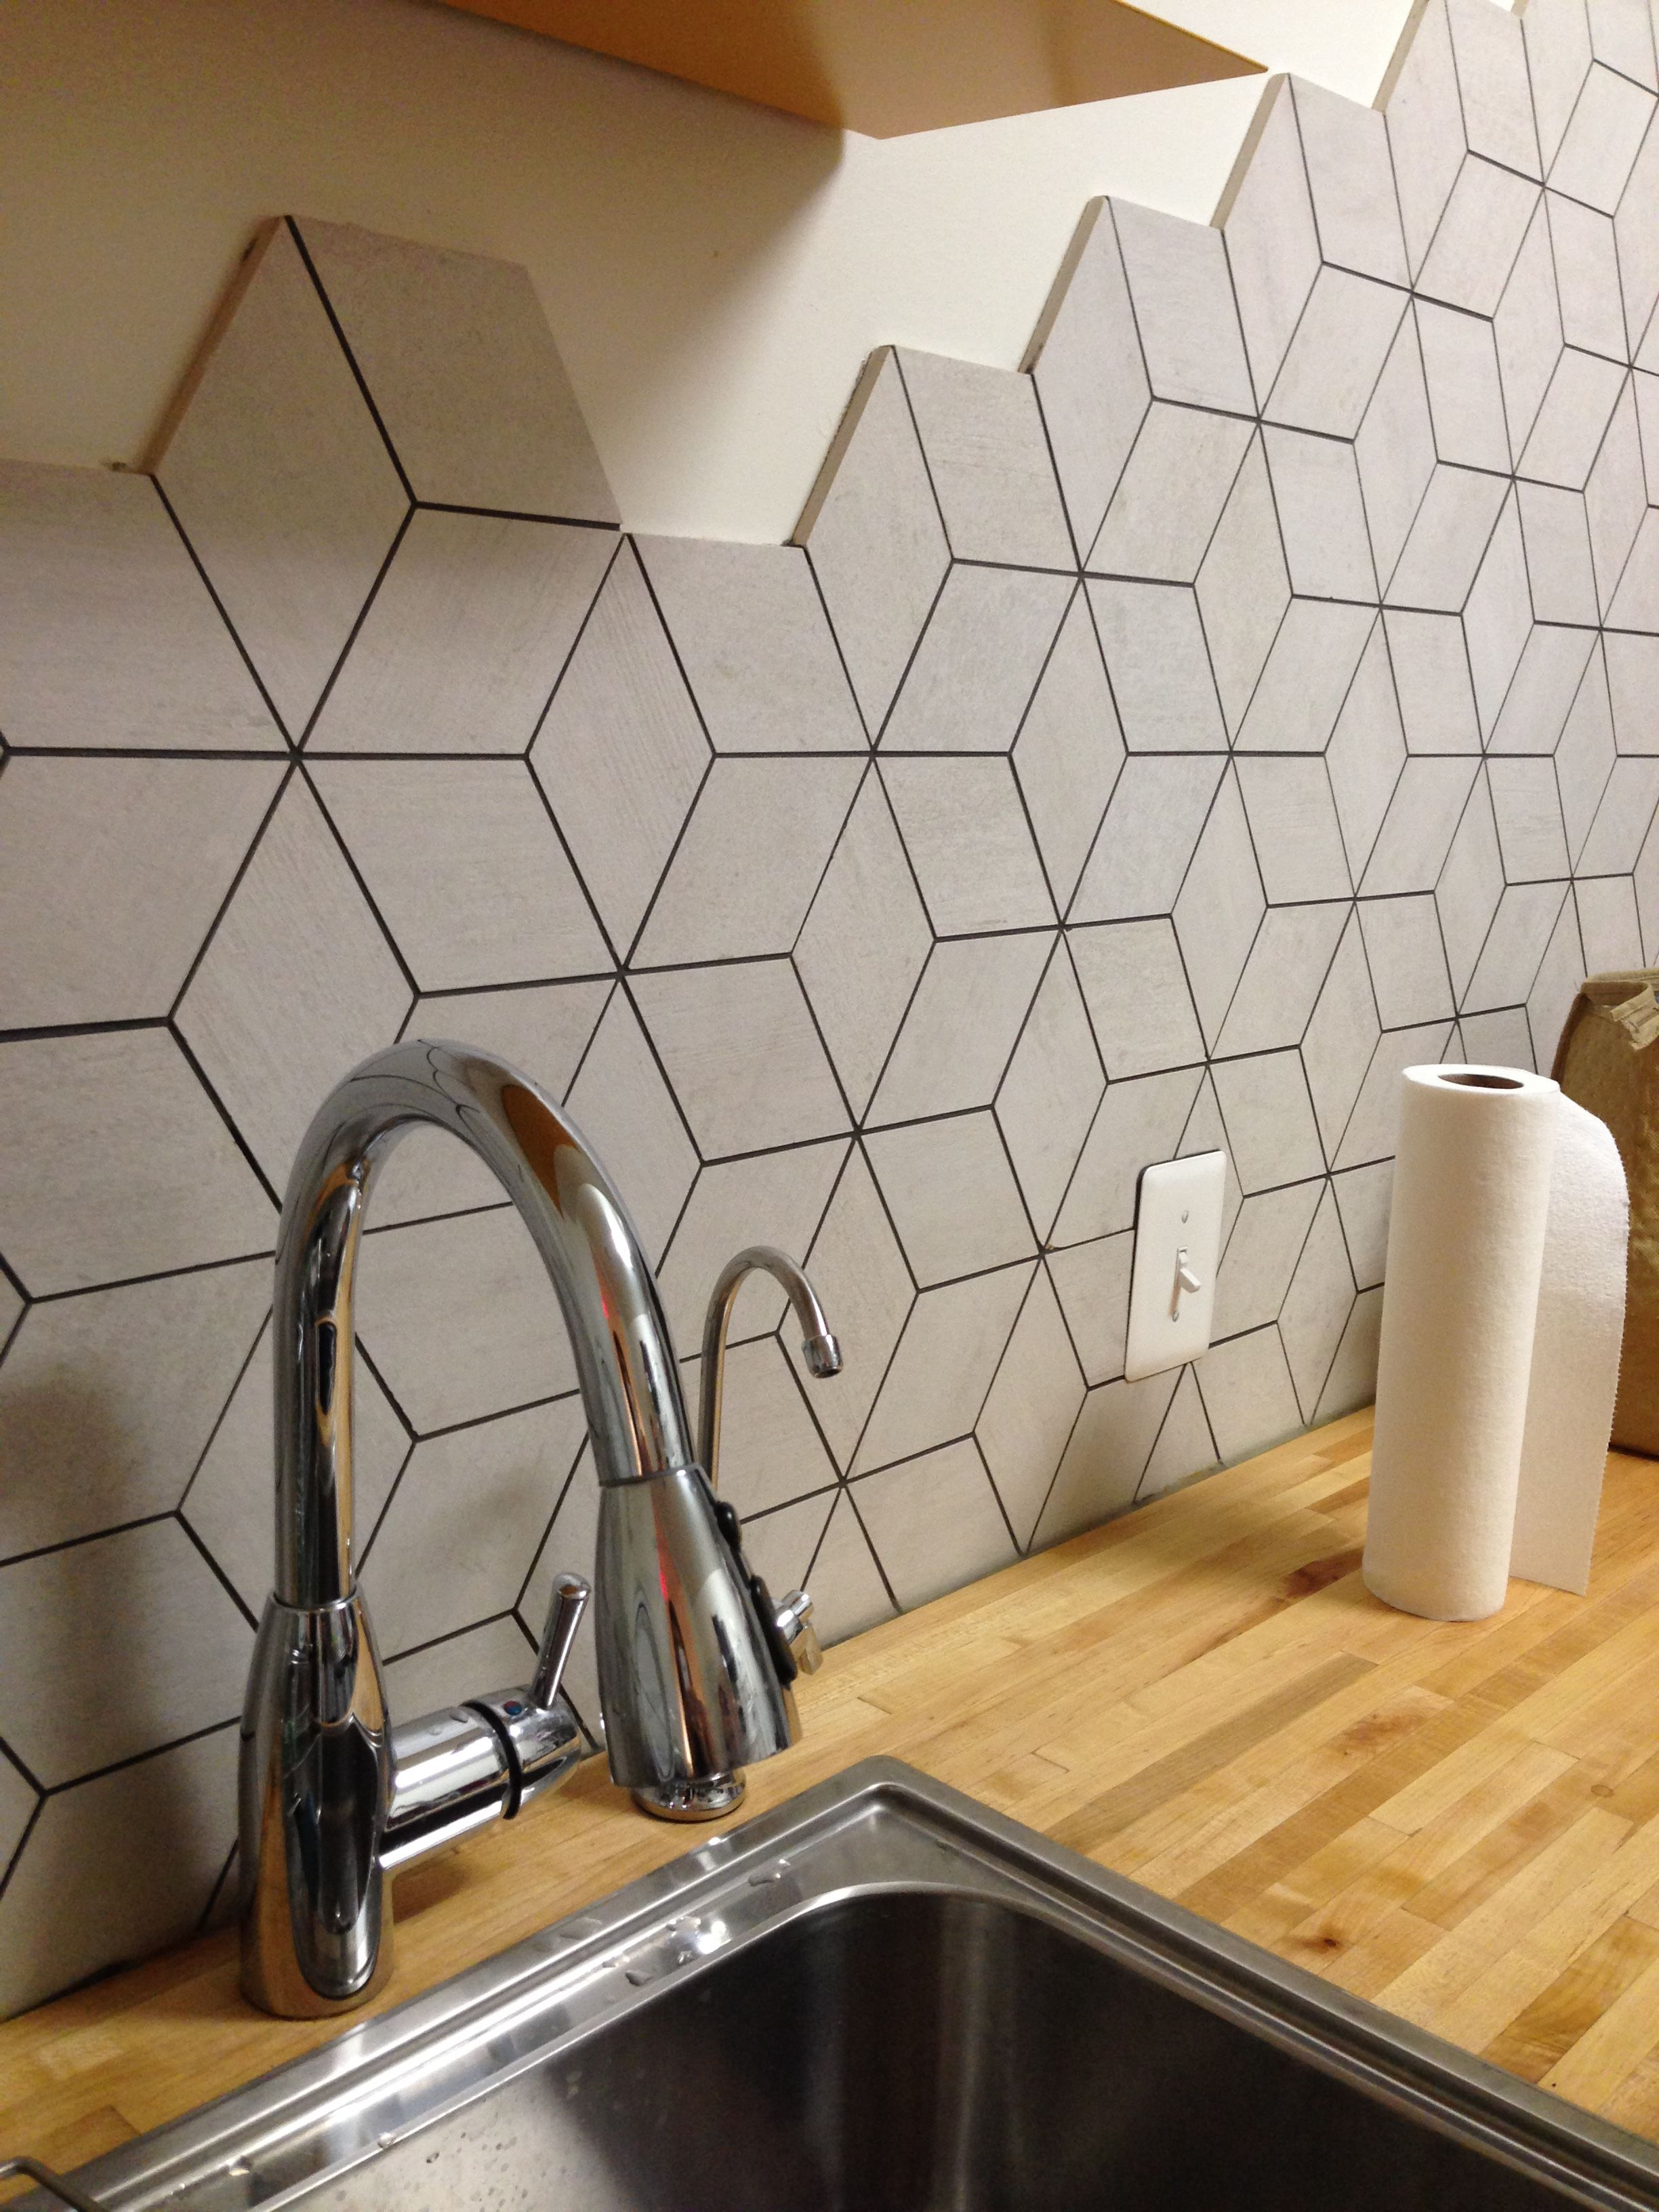 Kitchen Design And Tiles Mooie Ruiltegels Voor Achter De Keukenwand Kitchen In 2019